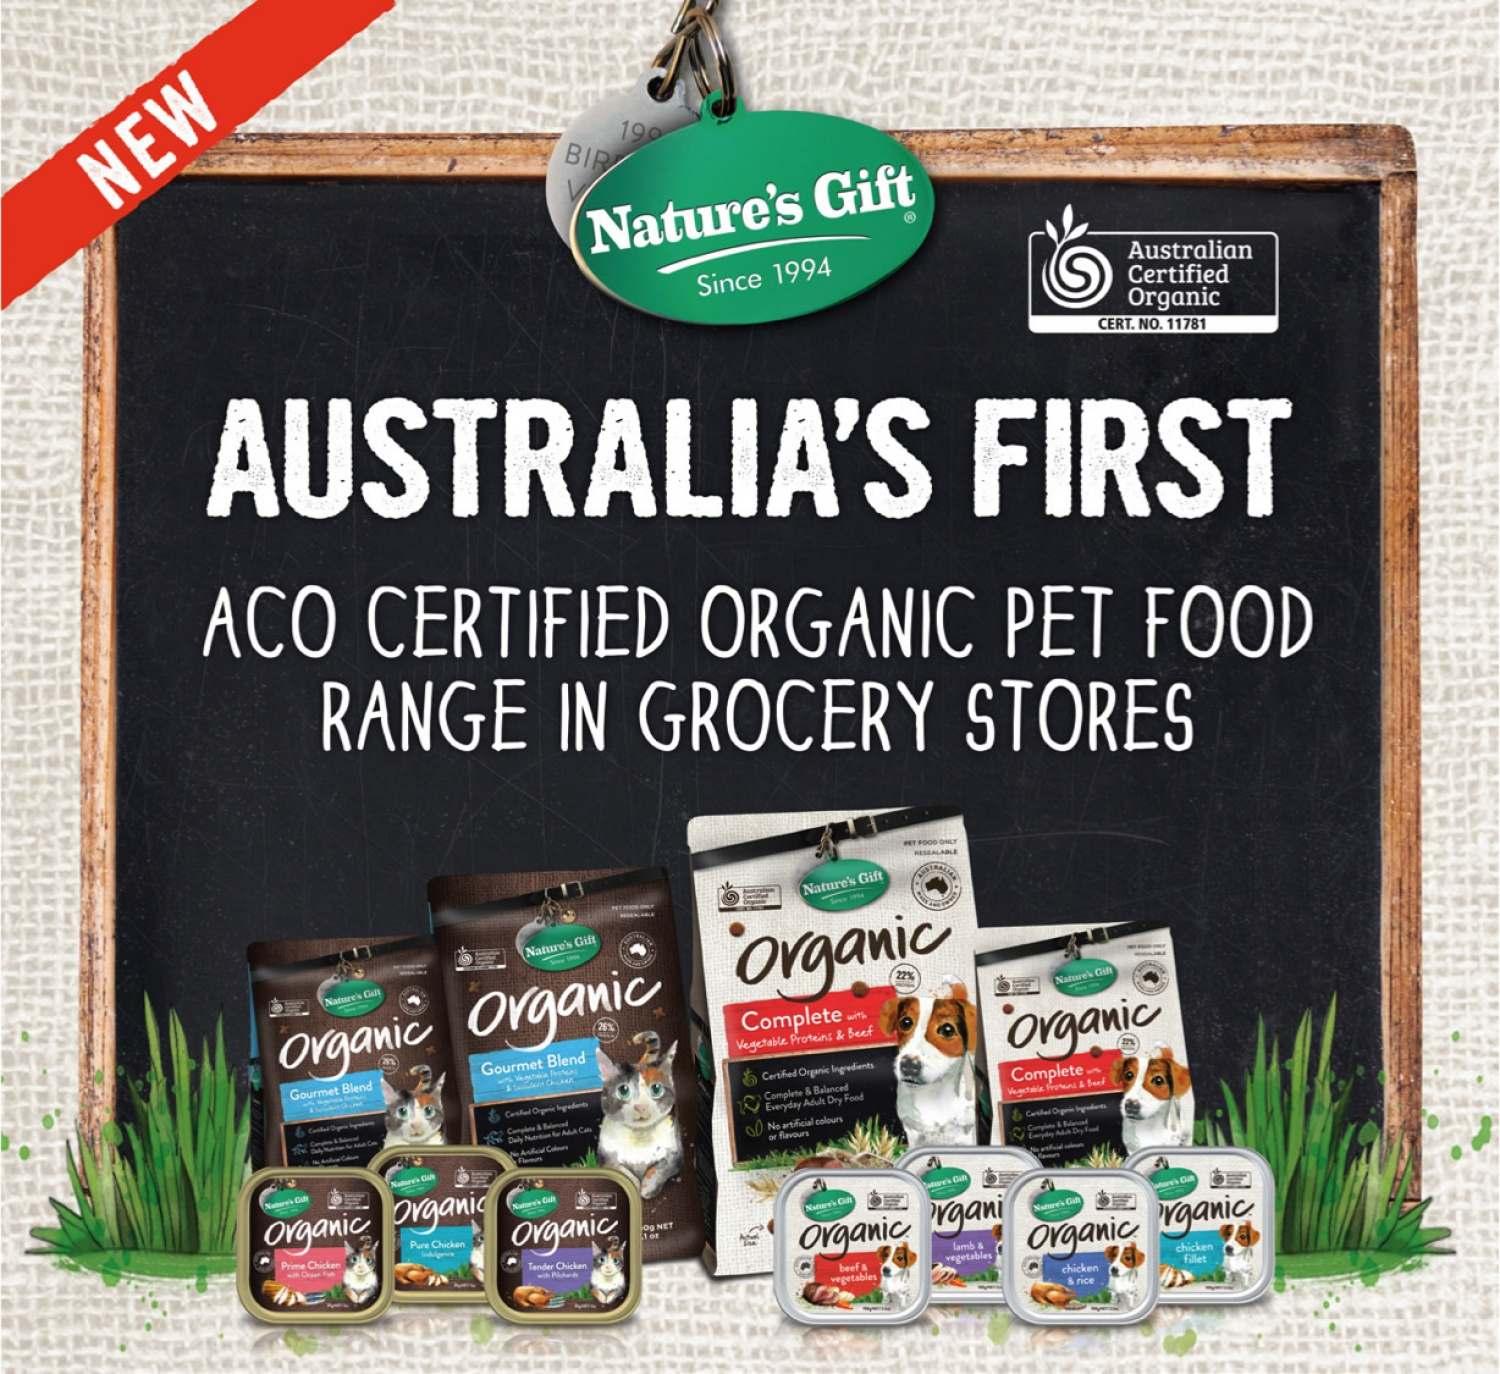 ACO Certified Organic Pet Food